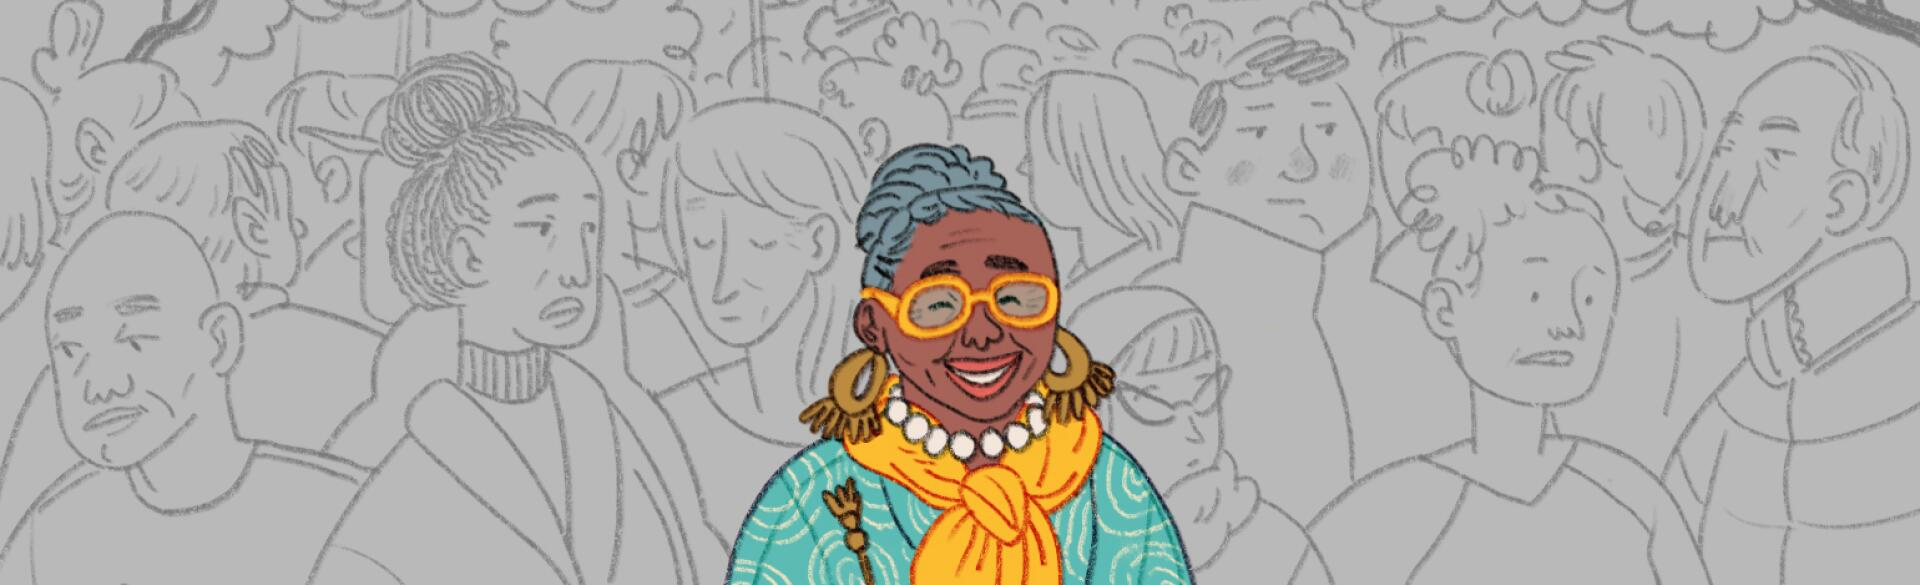 A graphic of a smiling woman in a crowd who does not notice her.